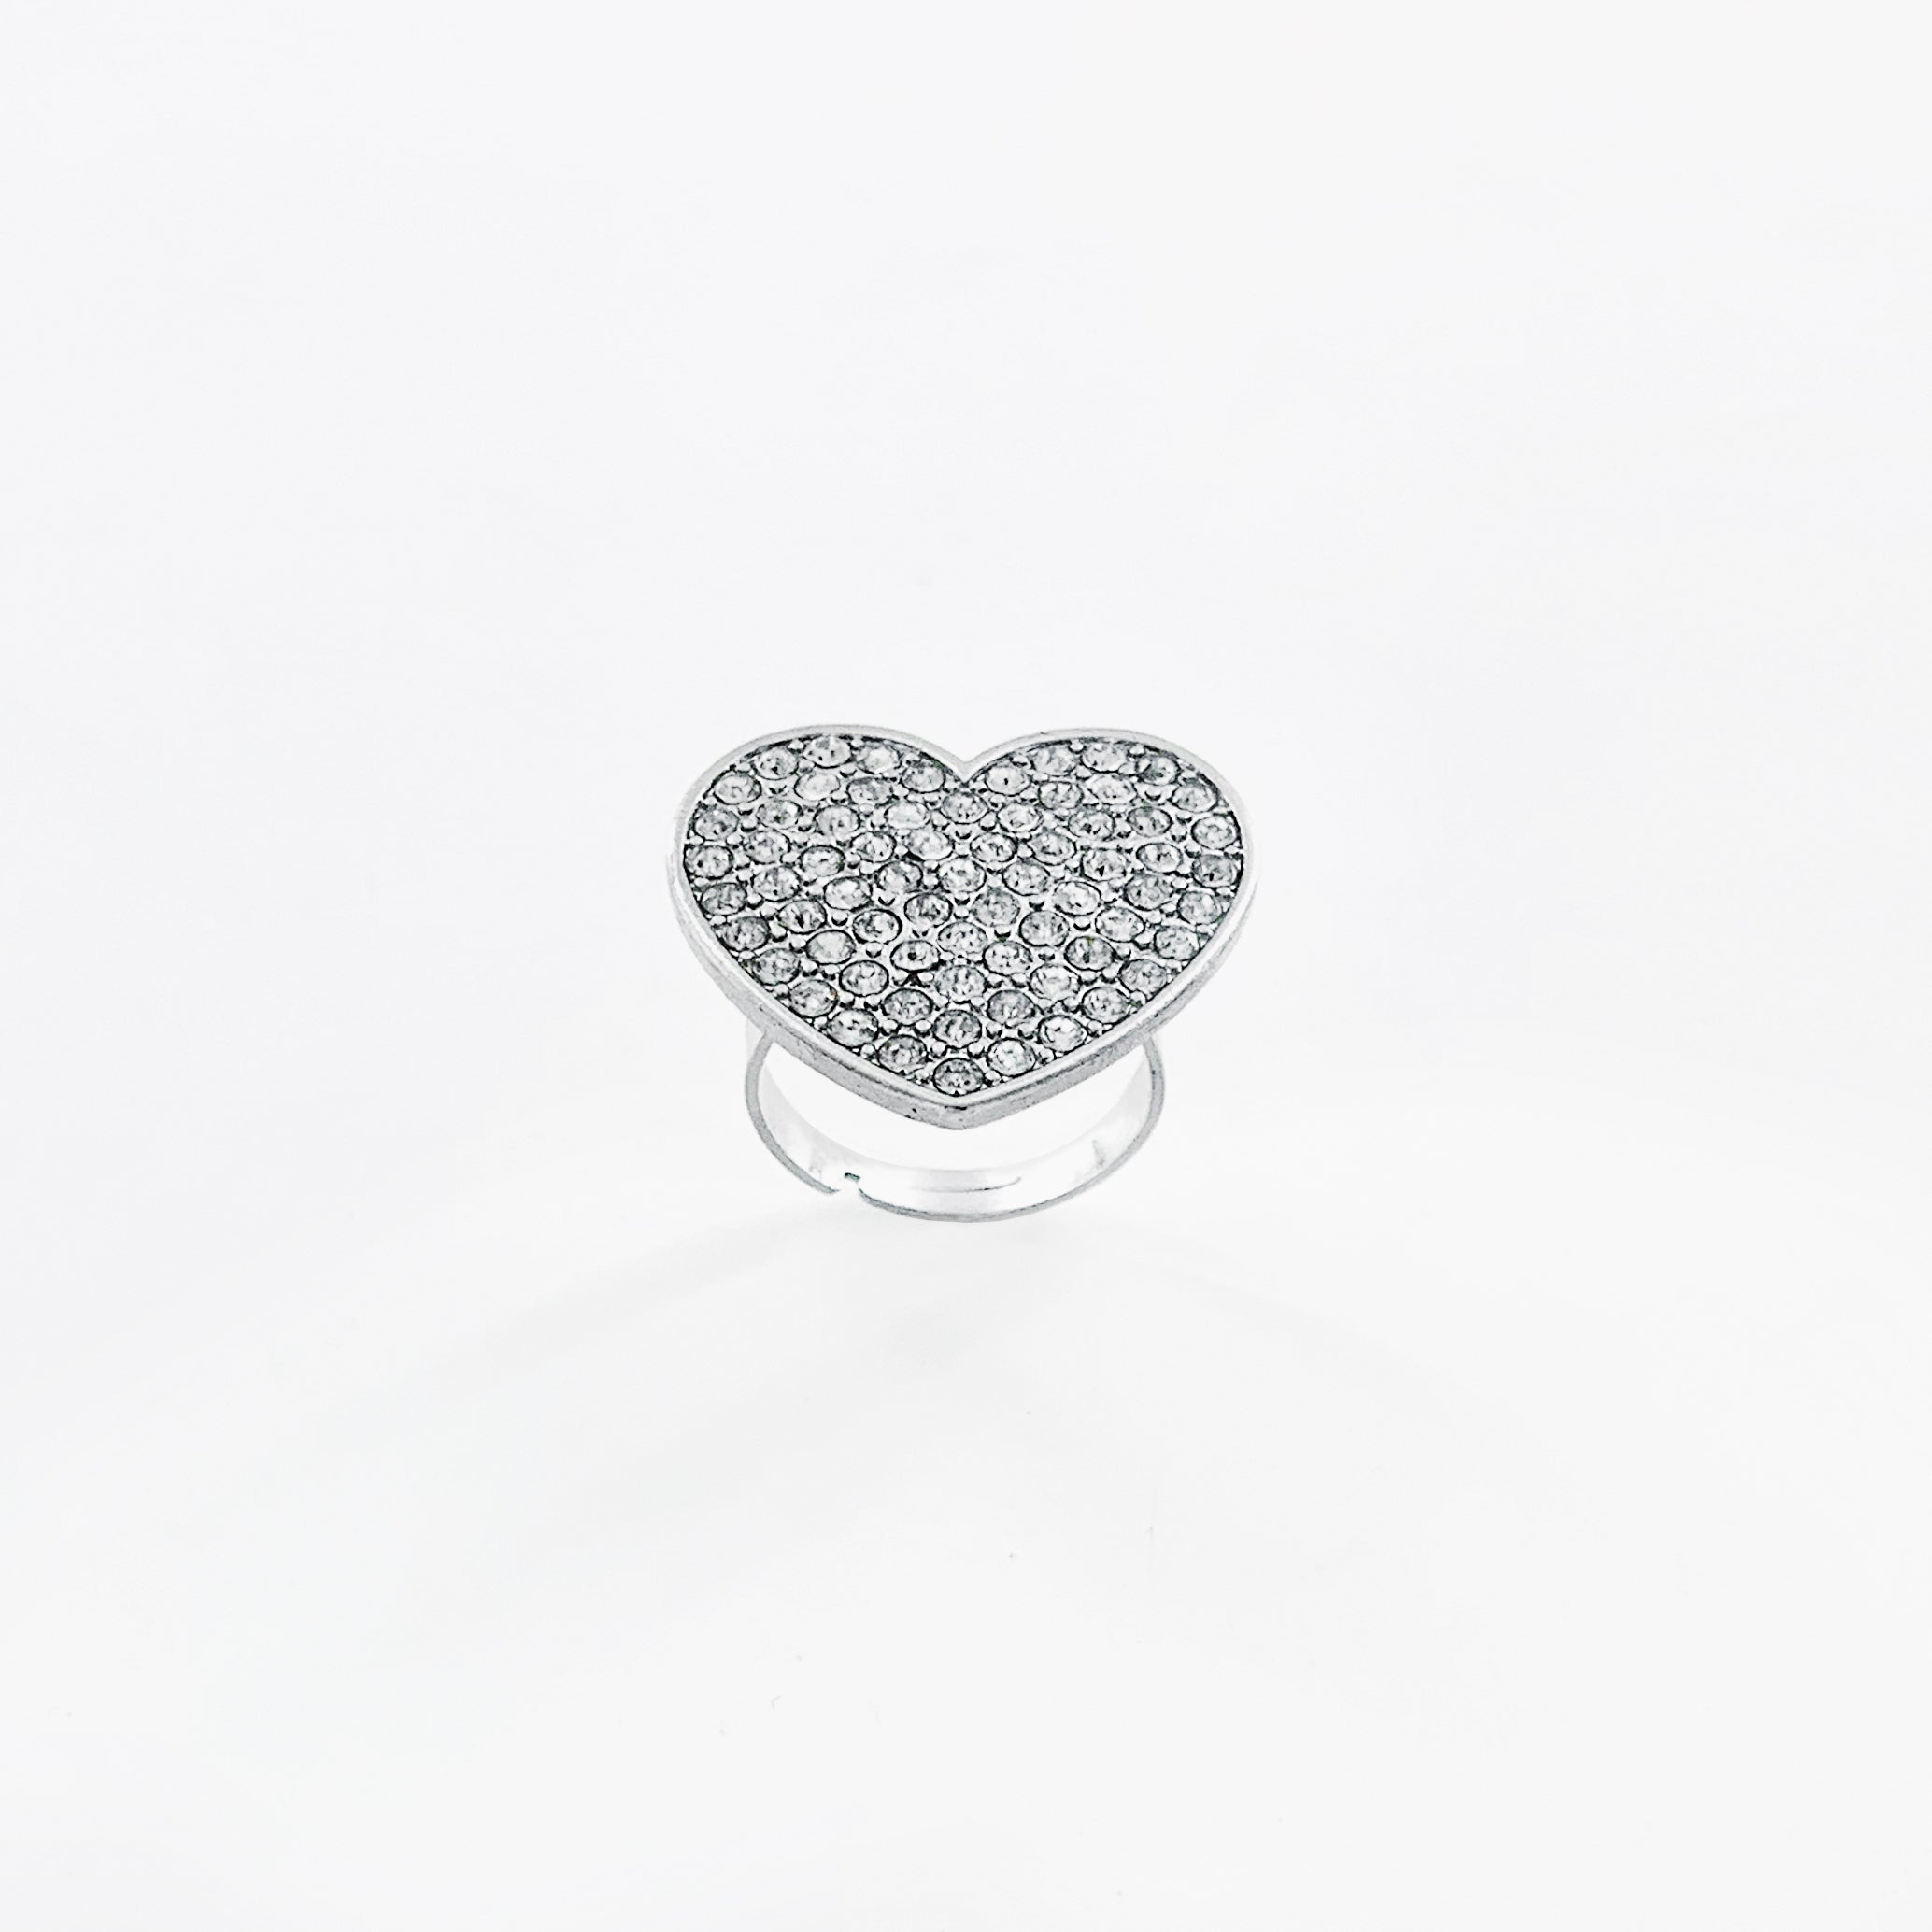 Silver ring with large diamante heart